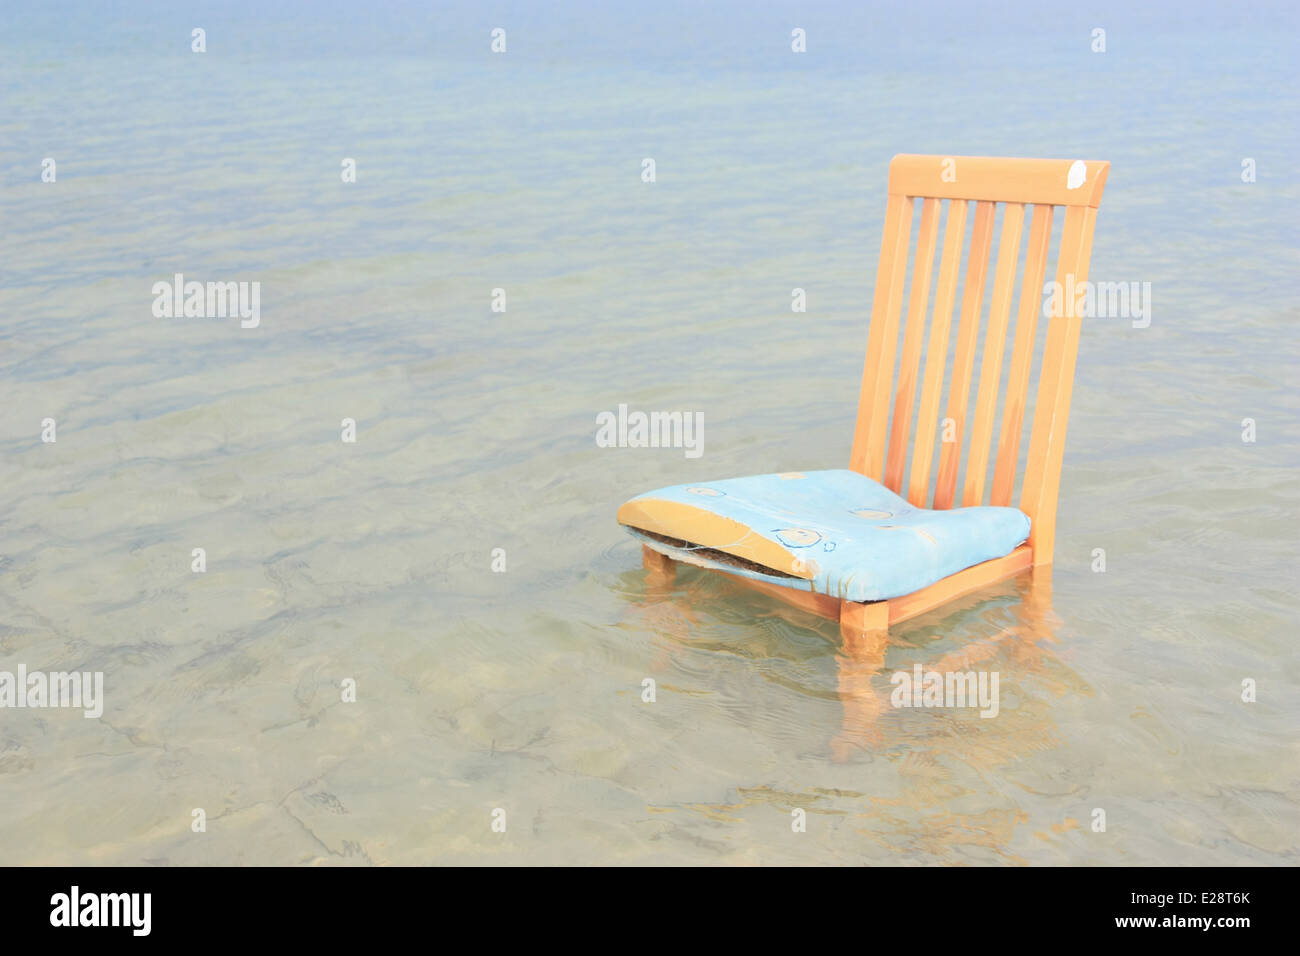 Chair in the sea - Stock Image